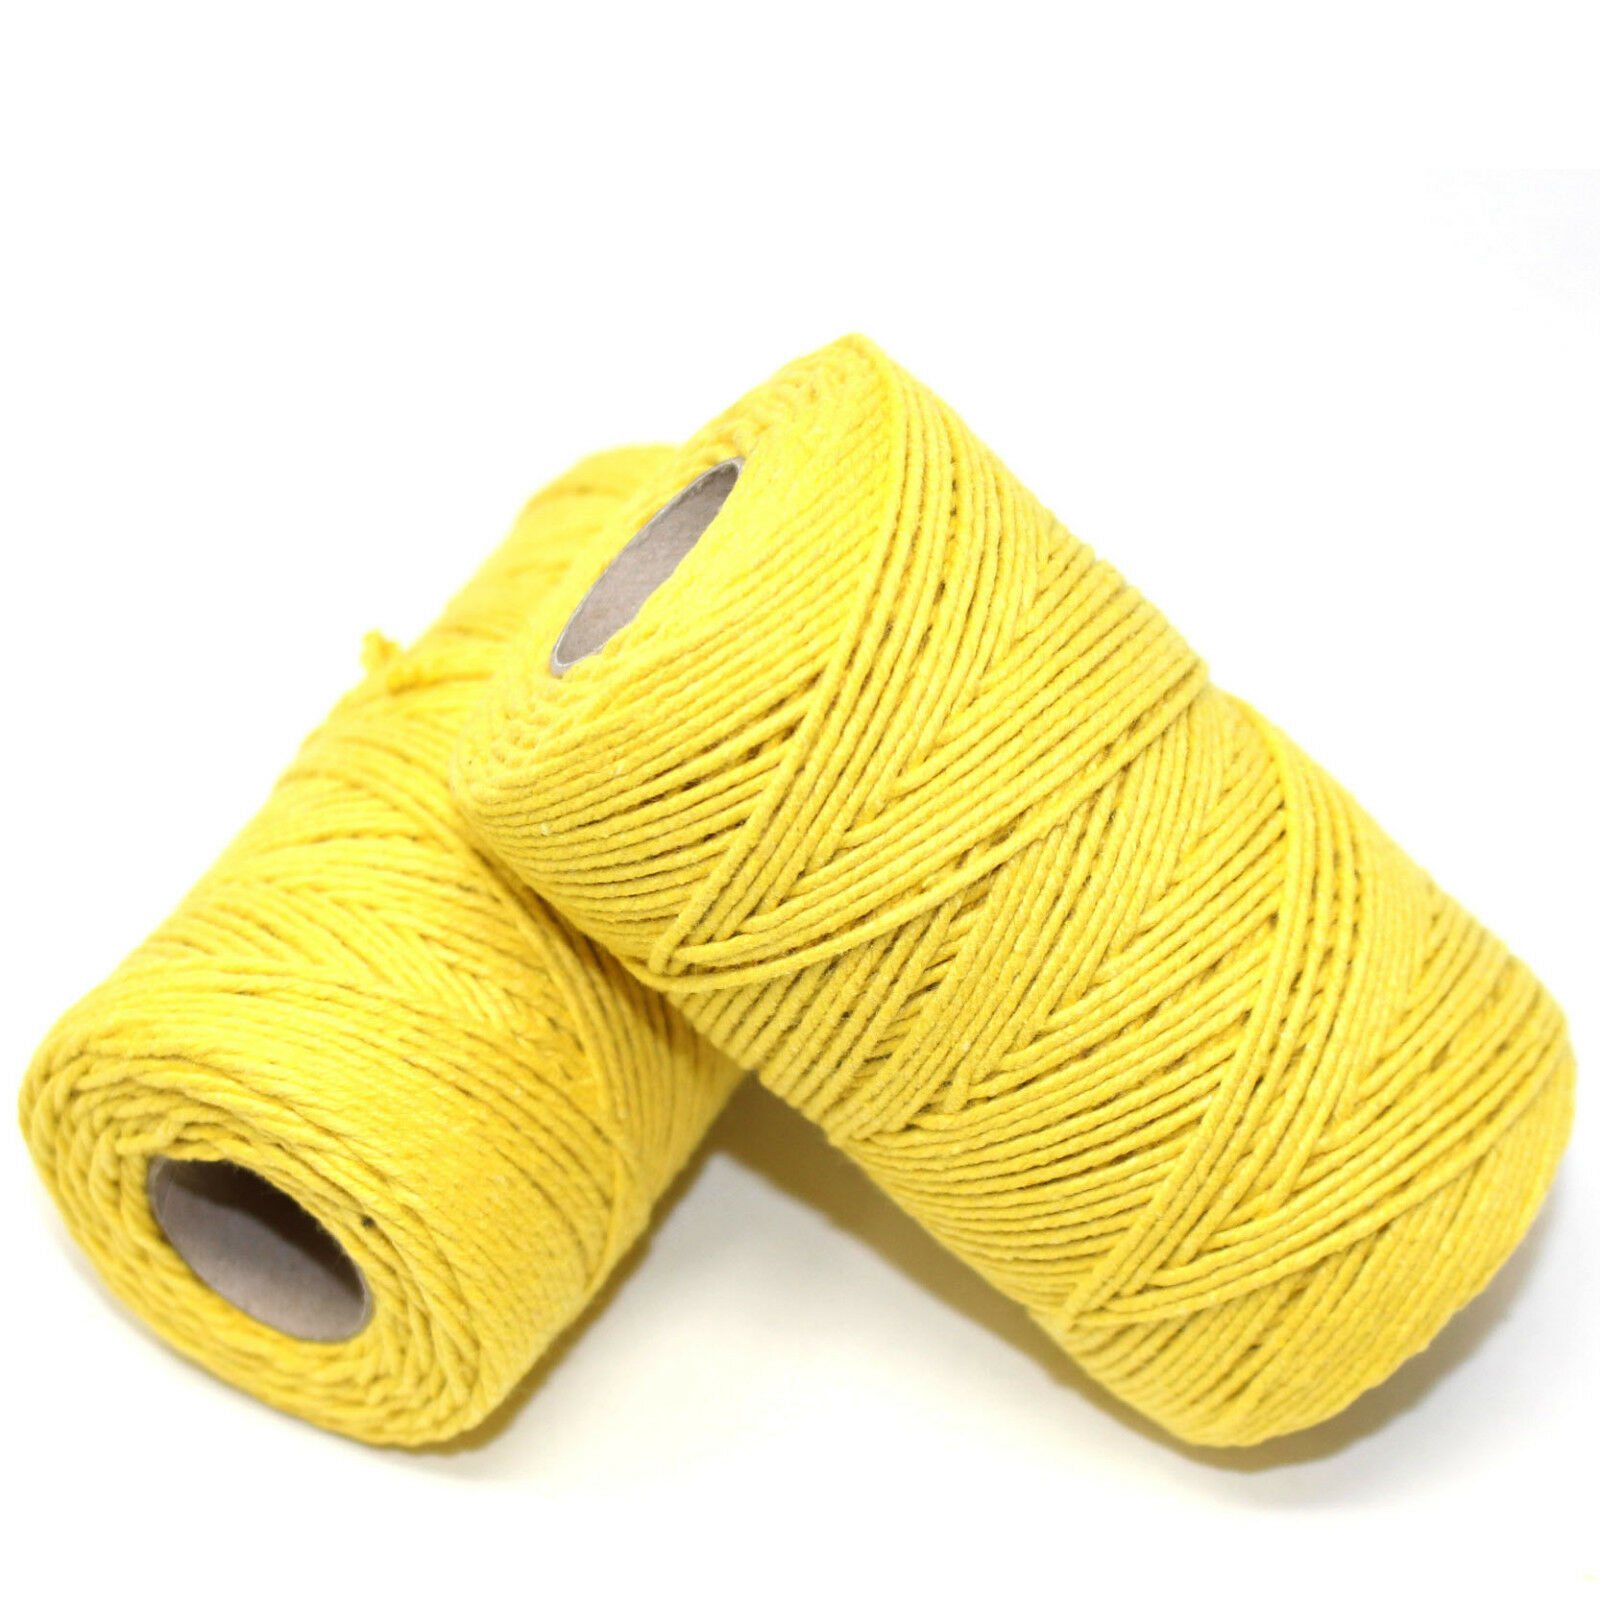 SOLID YELLOW BAKERS TWINE 2mm 2 PLY EASTER CRAFT TWINE STRING CORD WRAP